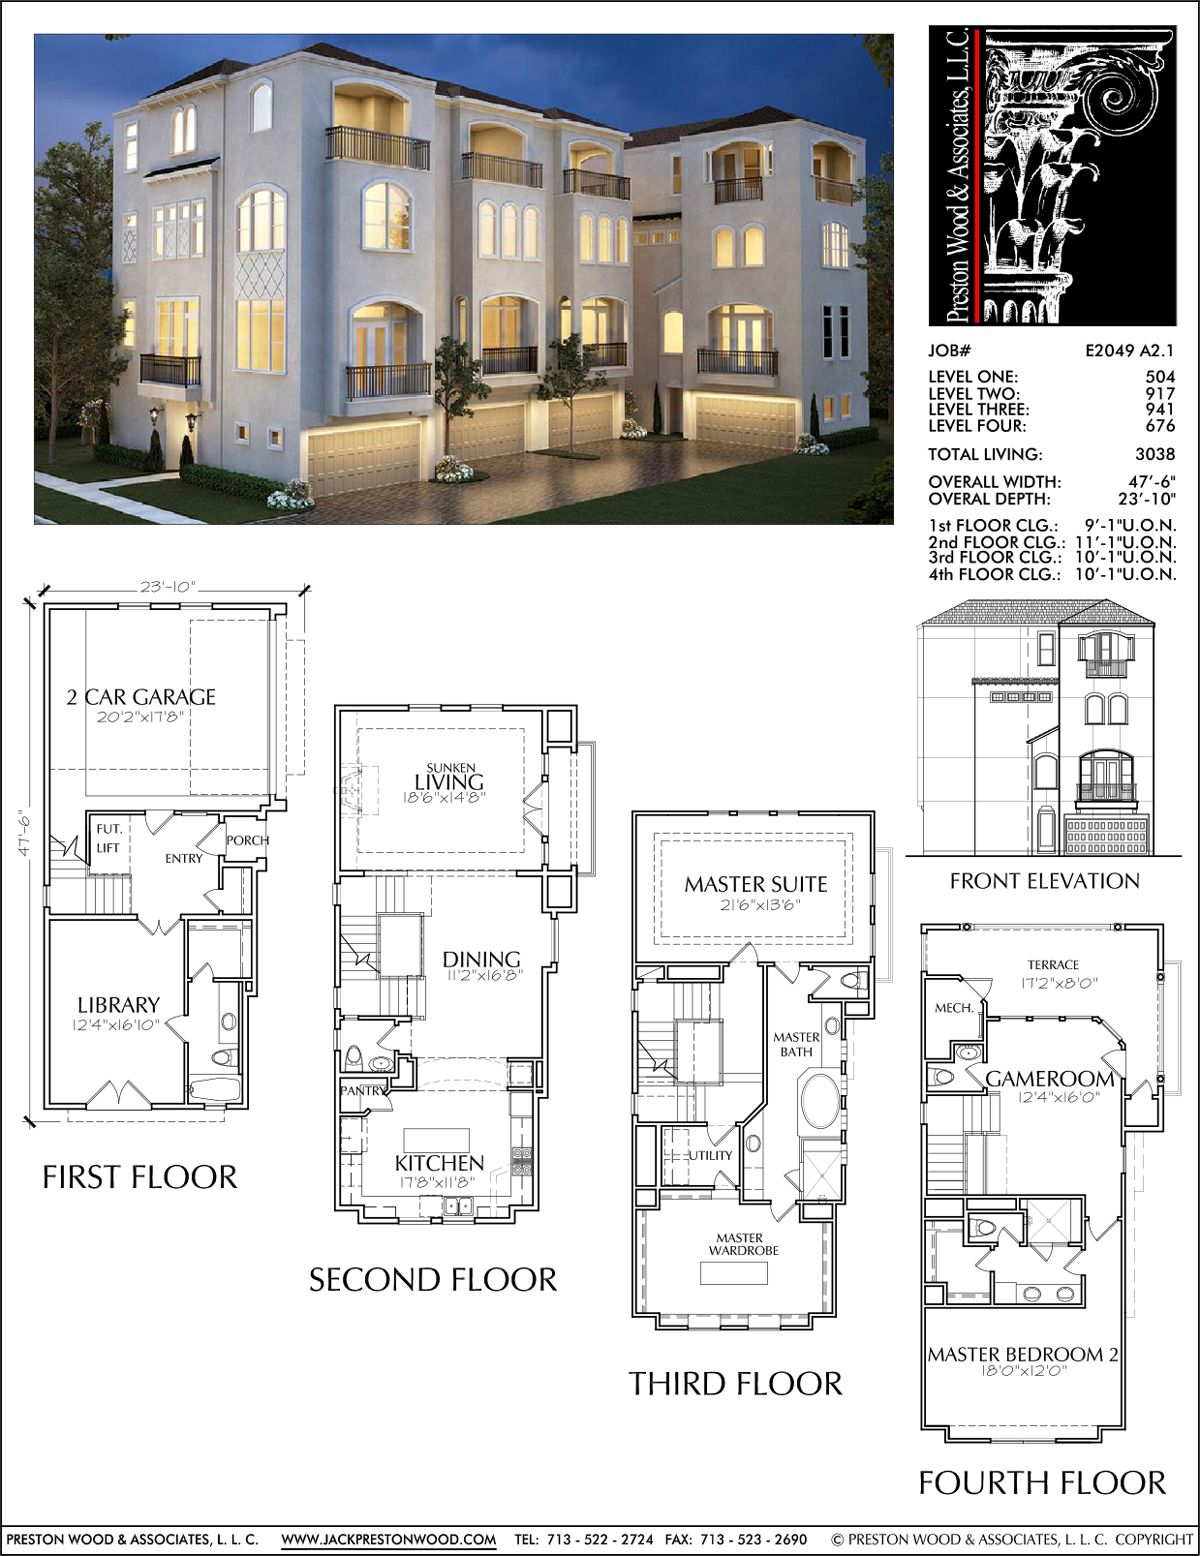 Townhouse plan e2049 a2 1 r c h pinterest for Townhouse building plans